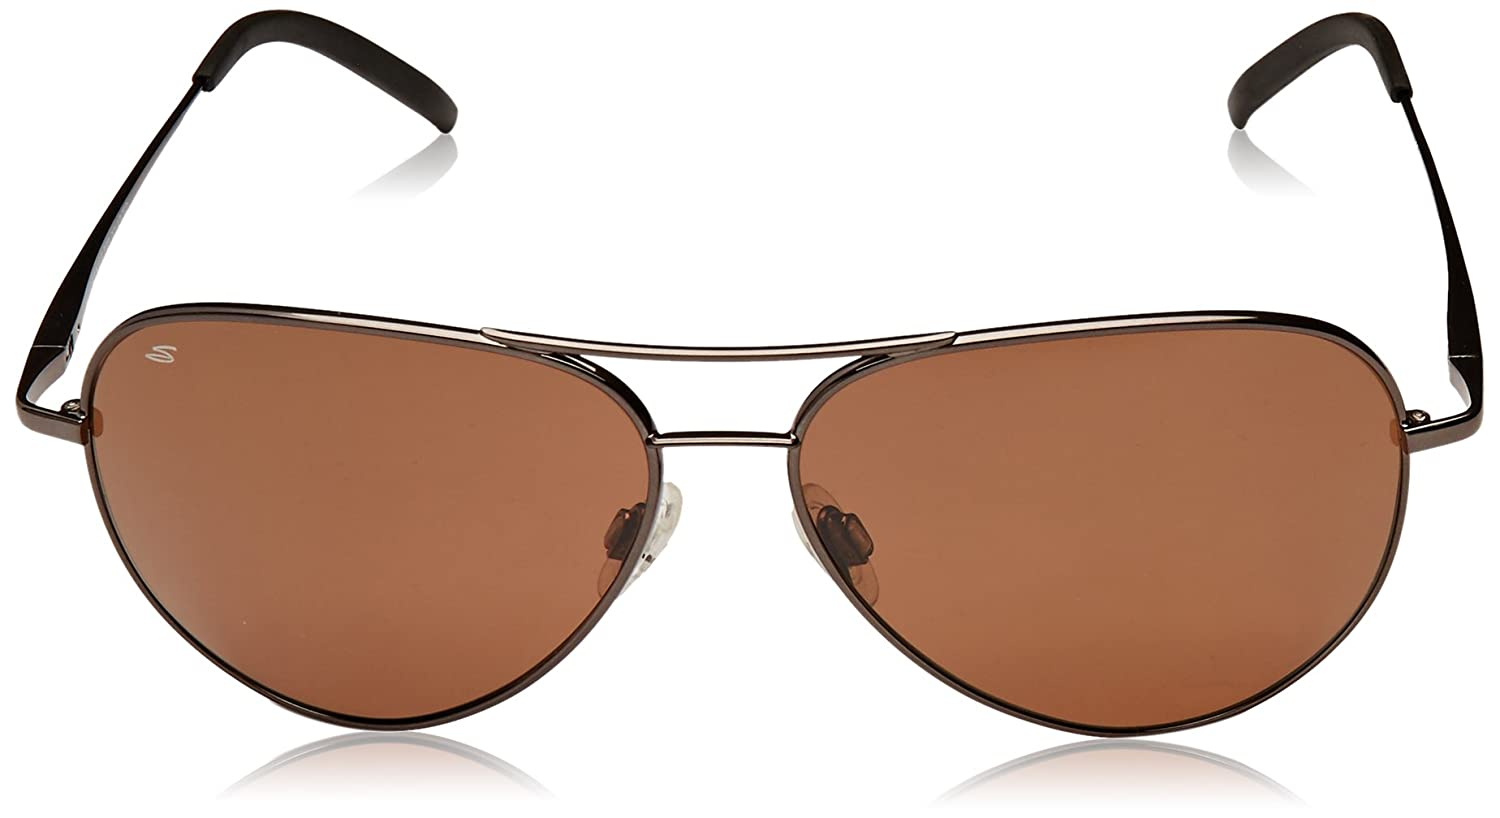 Serengeti Carrara Polarized Sunglasses Serengeti Eyewear